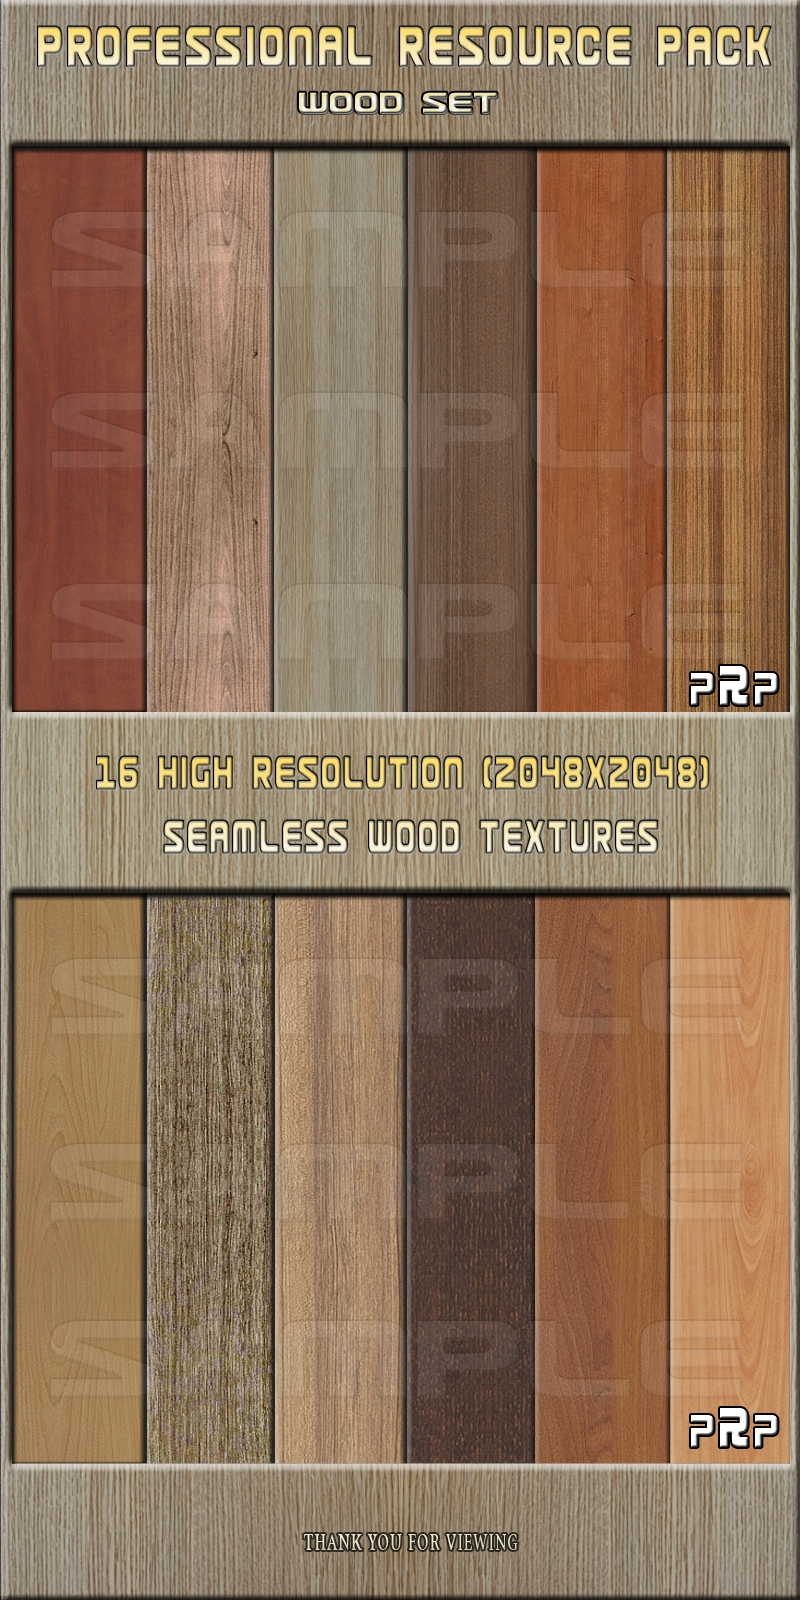 Professional Resource Pack-Wood Set